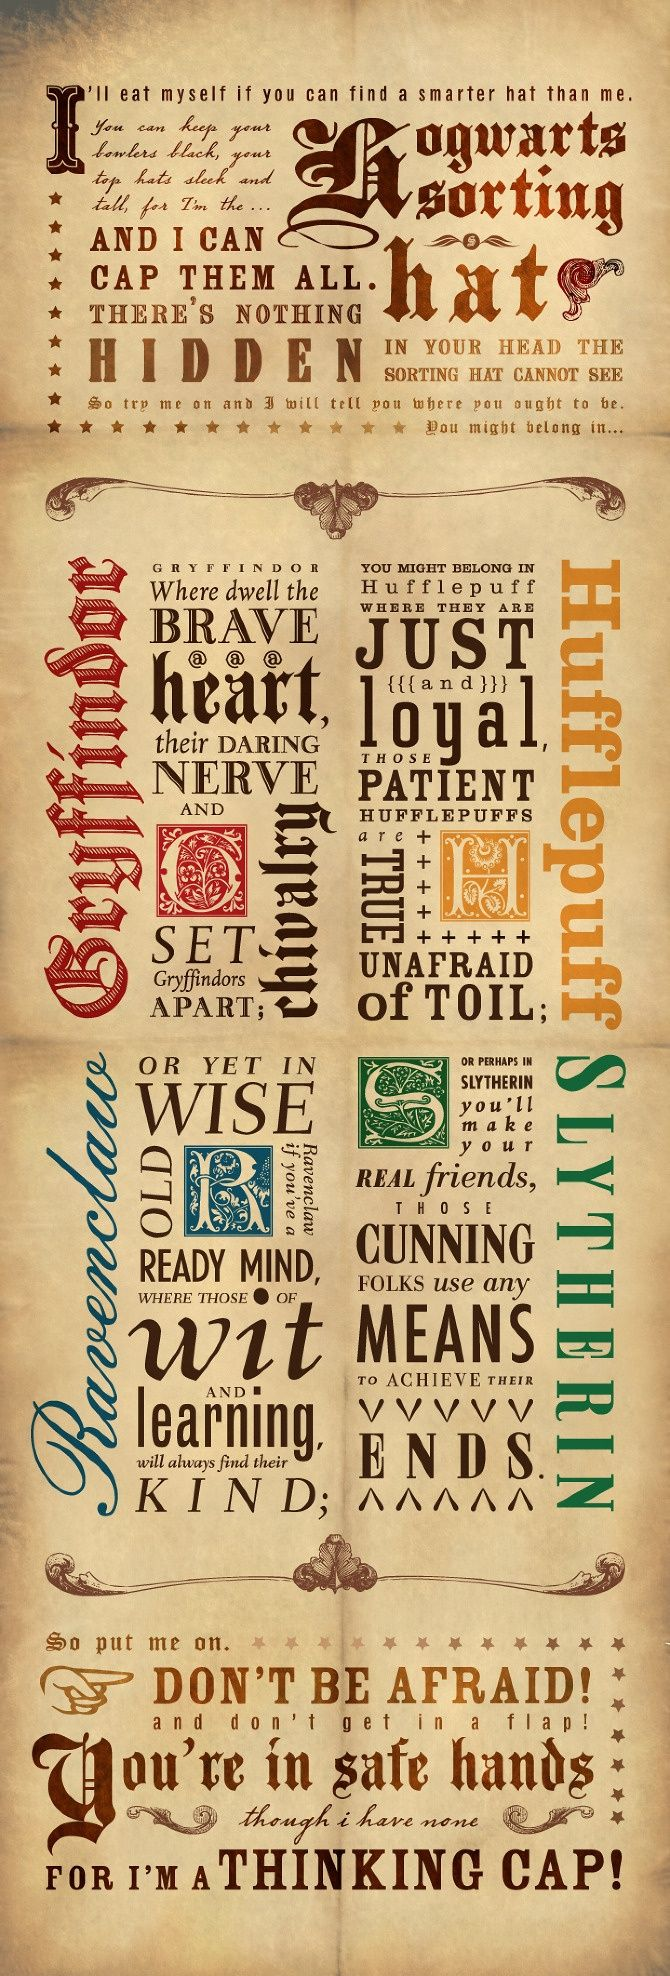 sorting hat song - Google Search